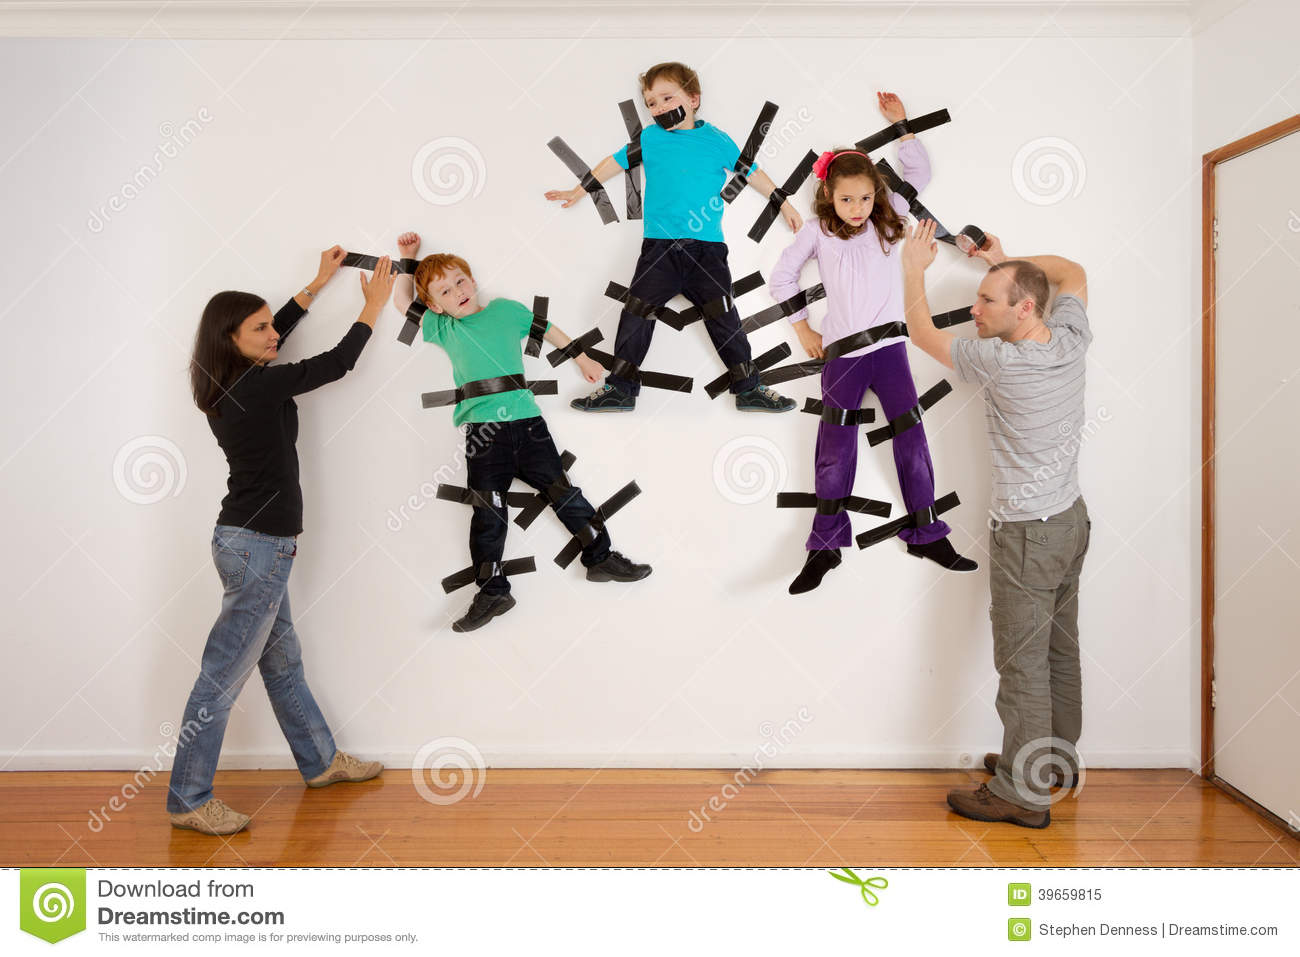 parents sticking children to wall joke royalty free stock photo - Free Children Images